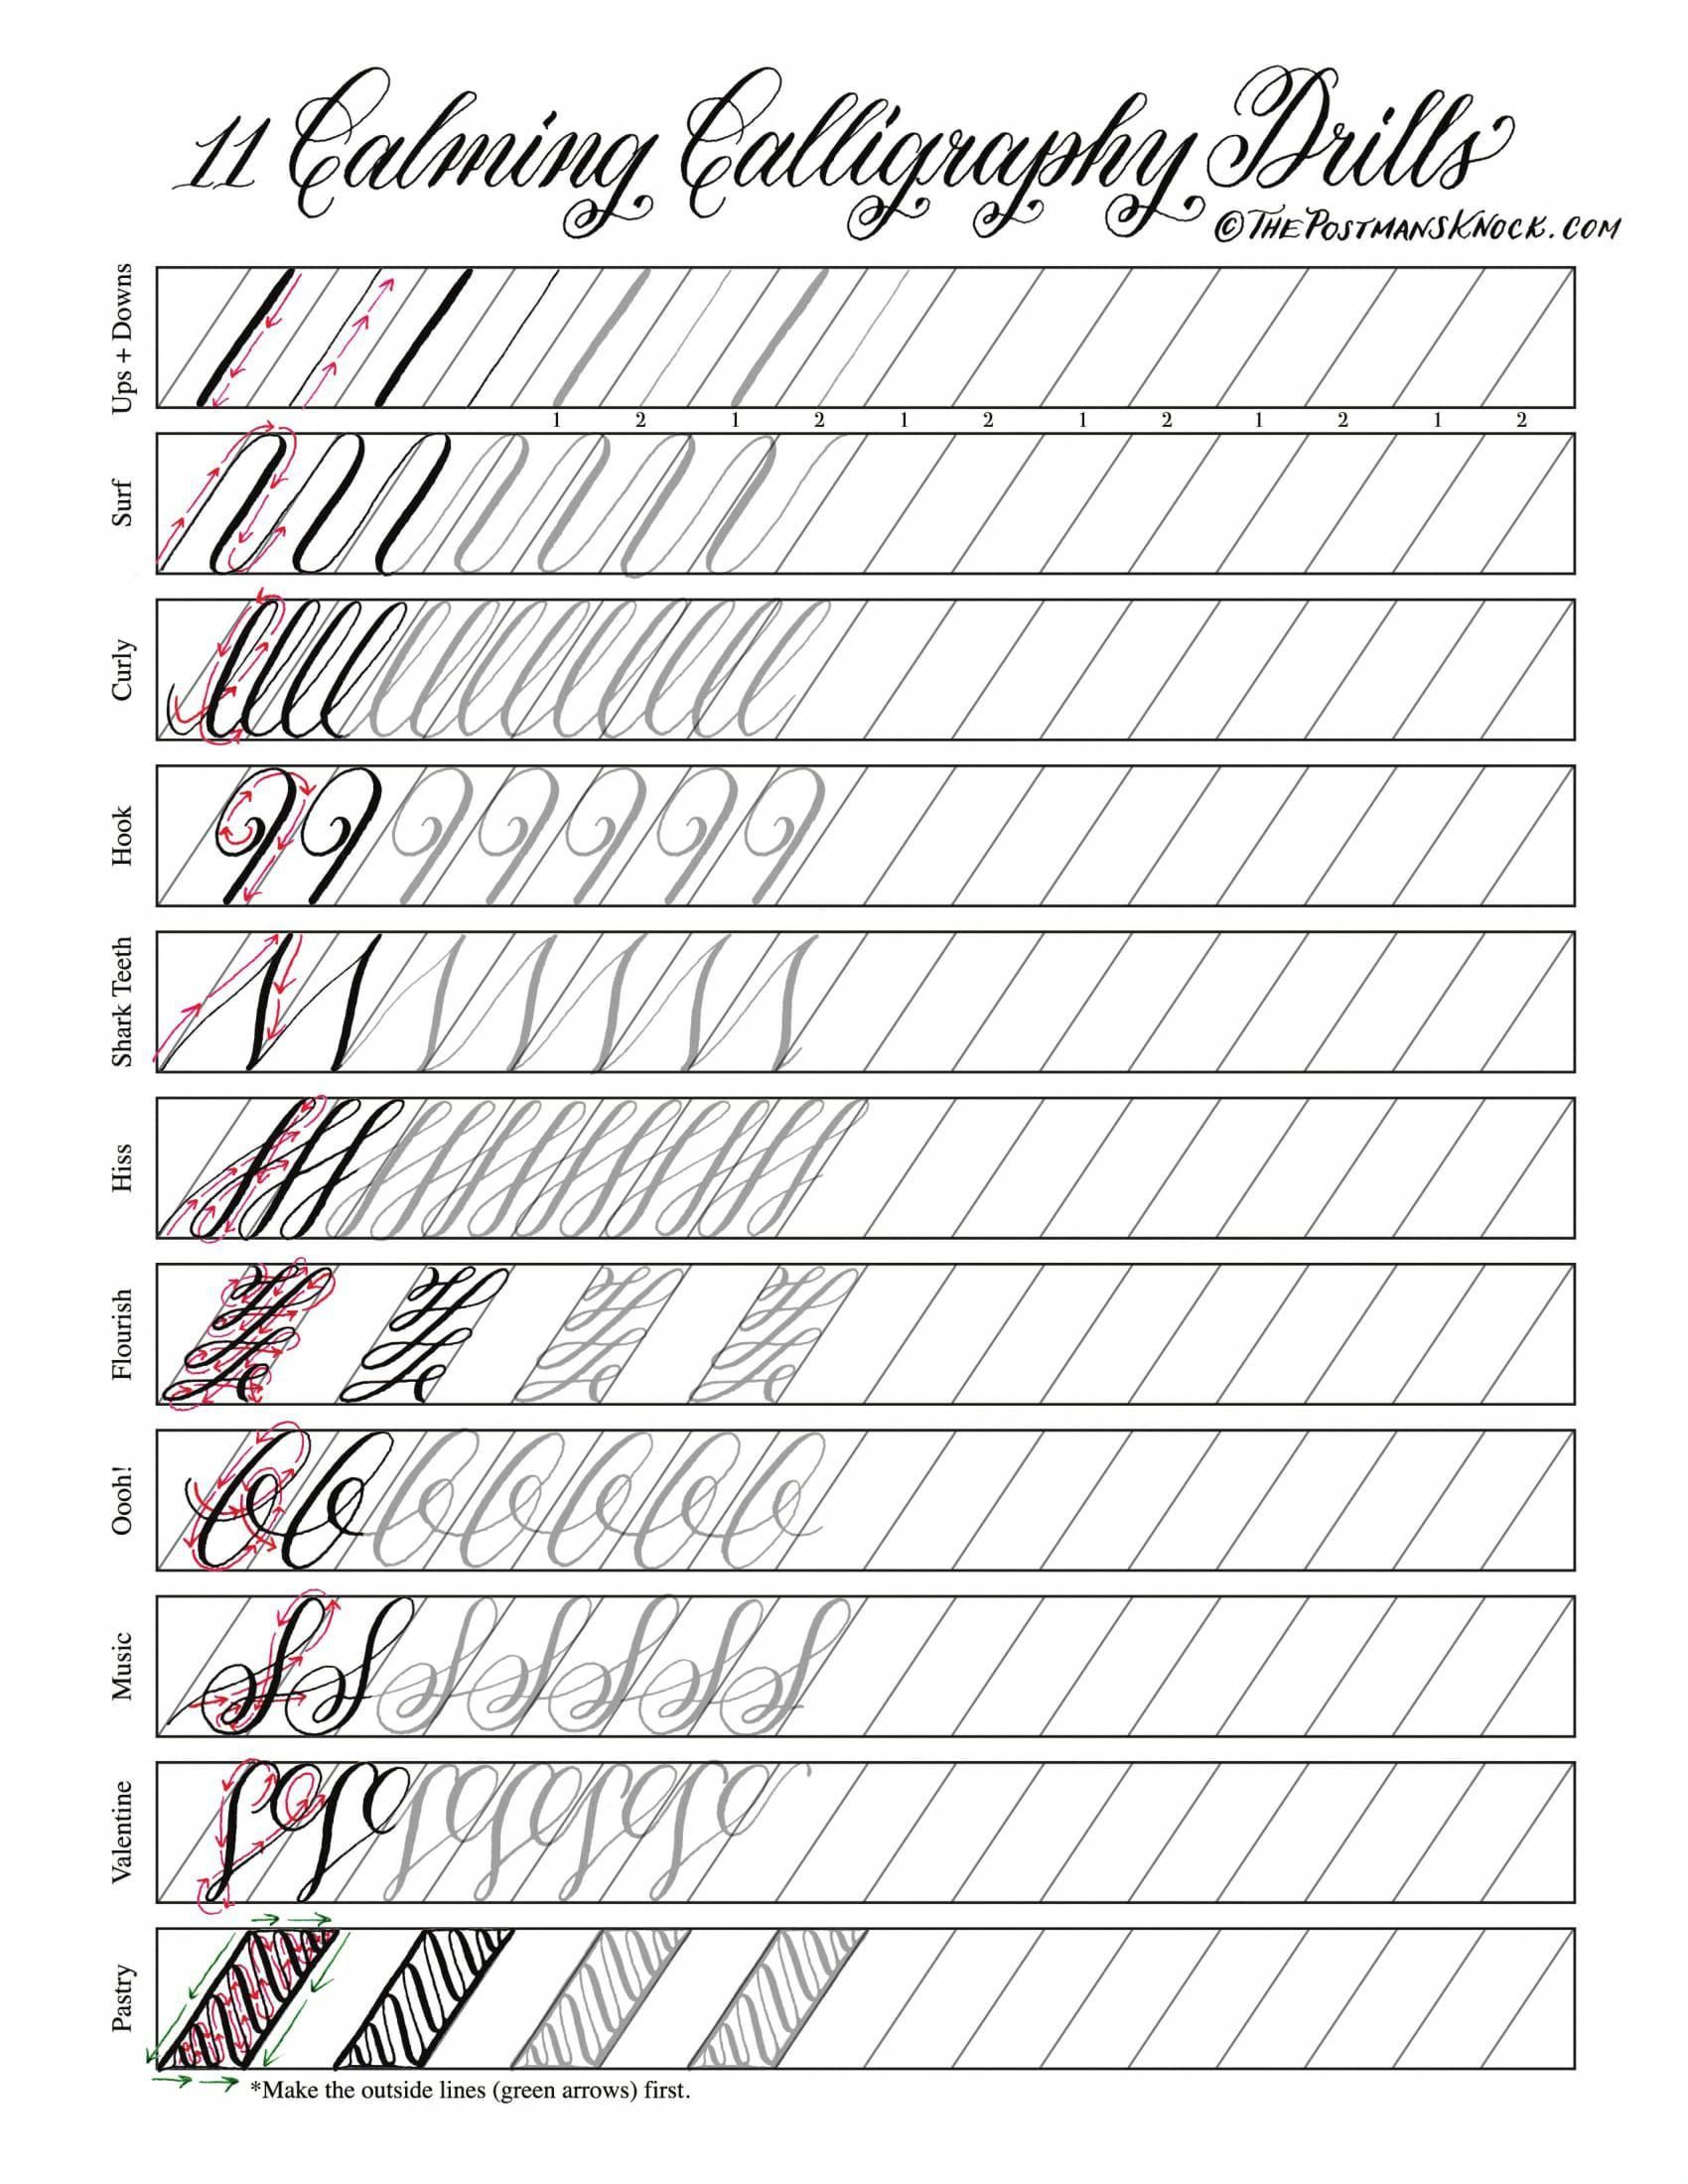 Pin By Patricia Binner On Calligraphie In